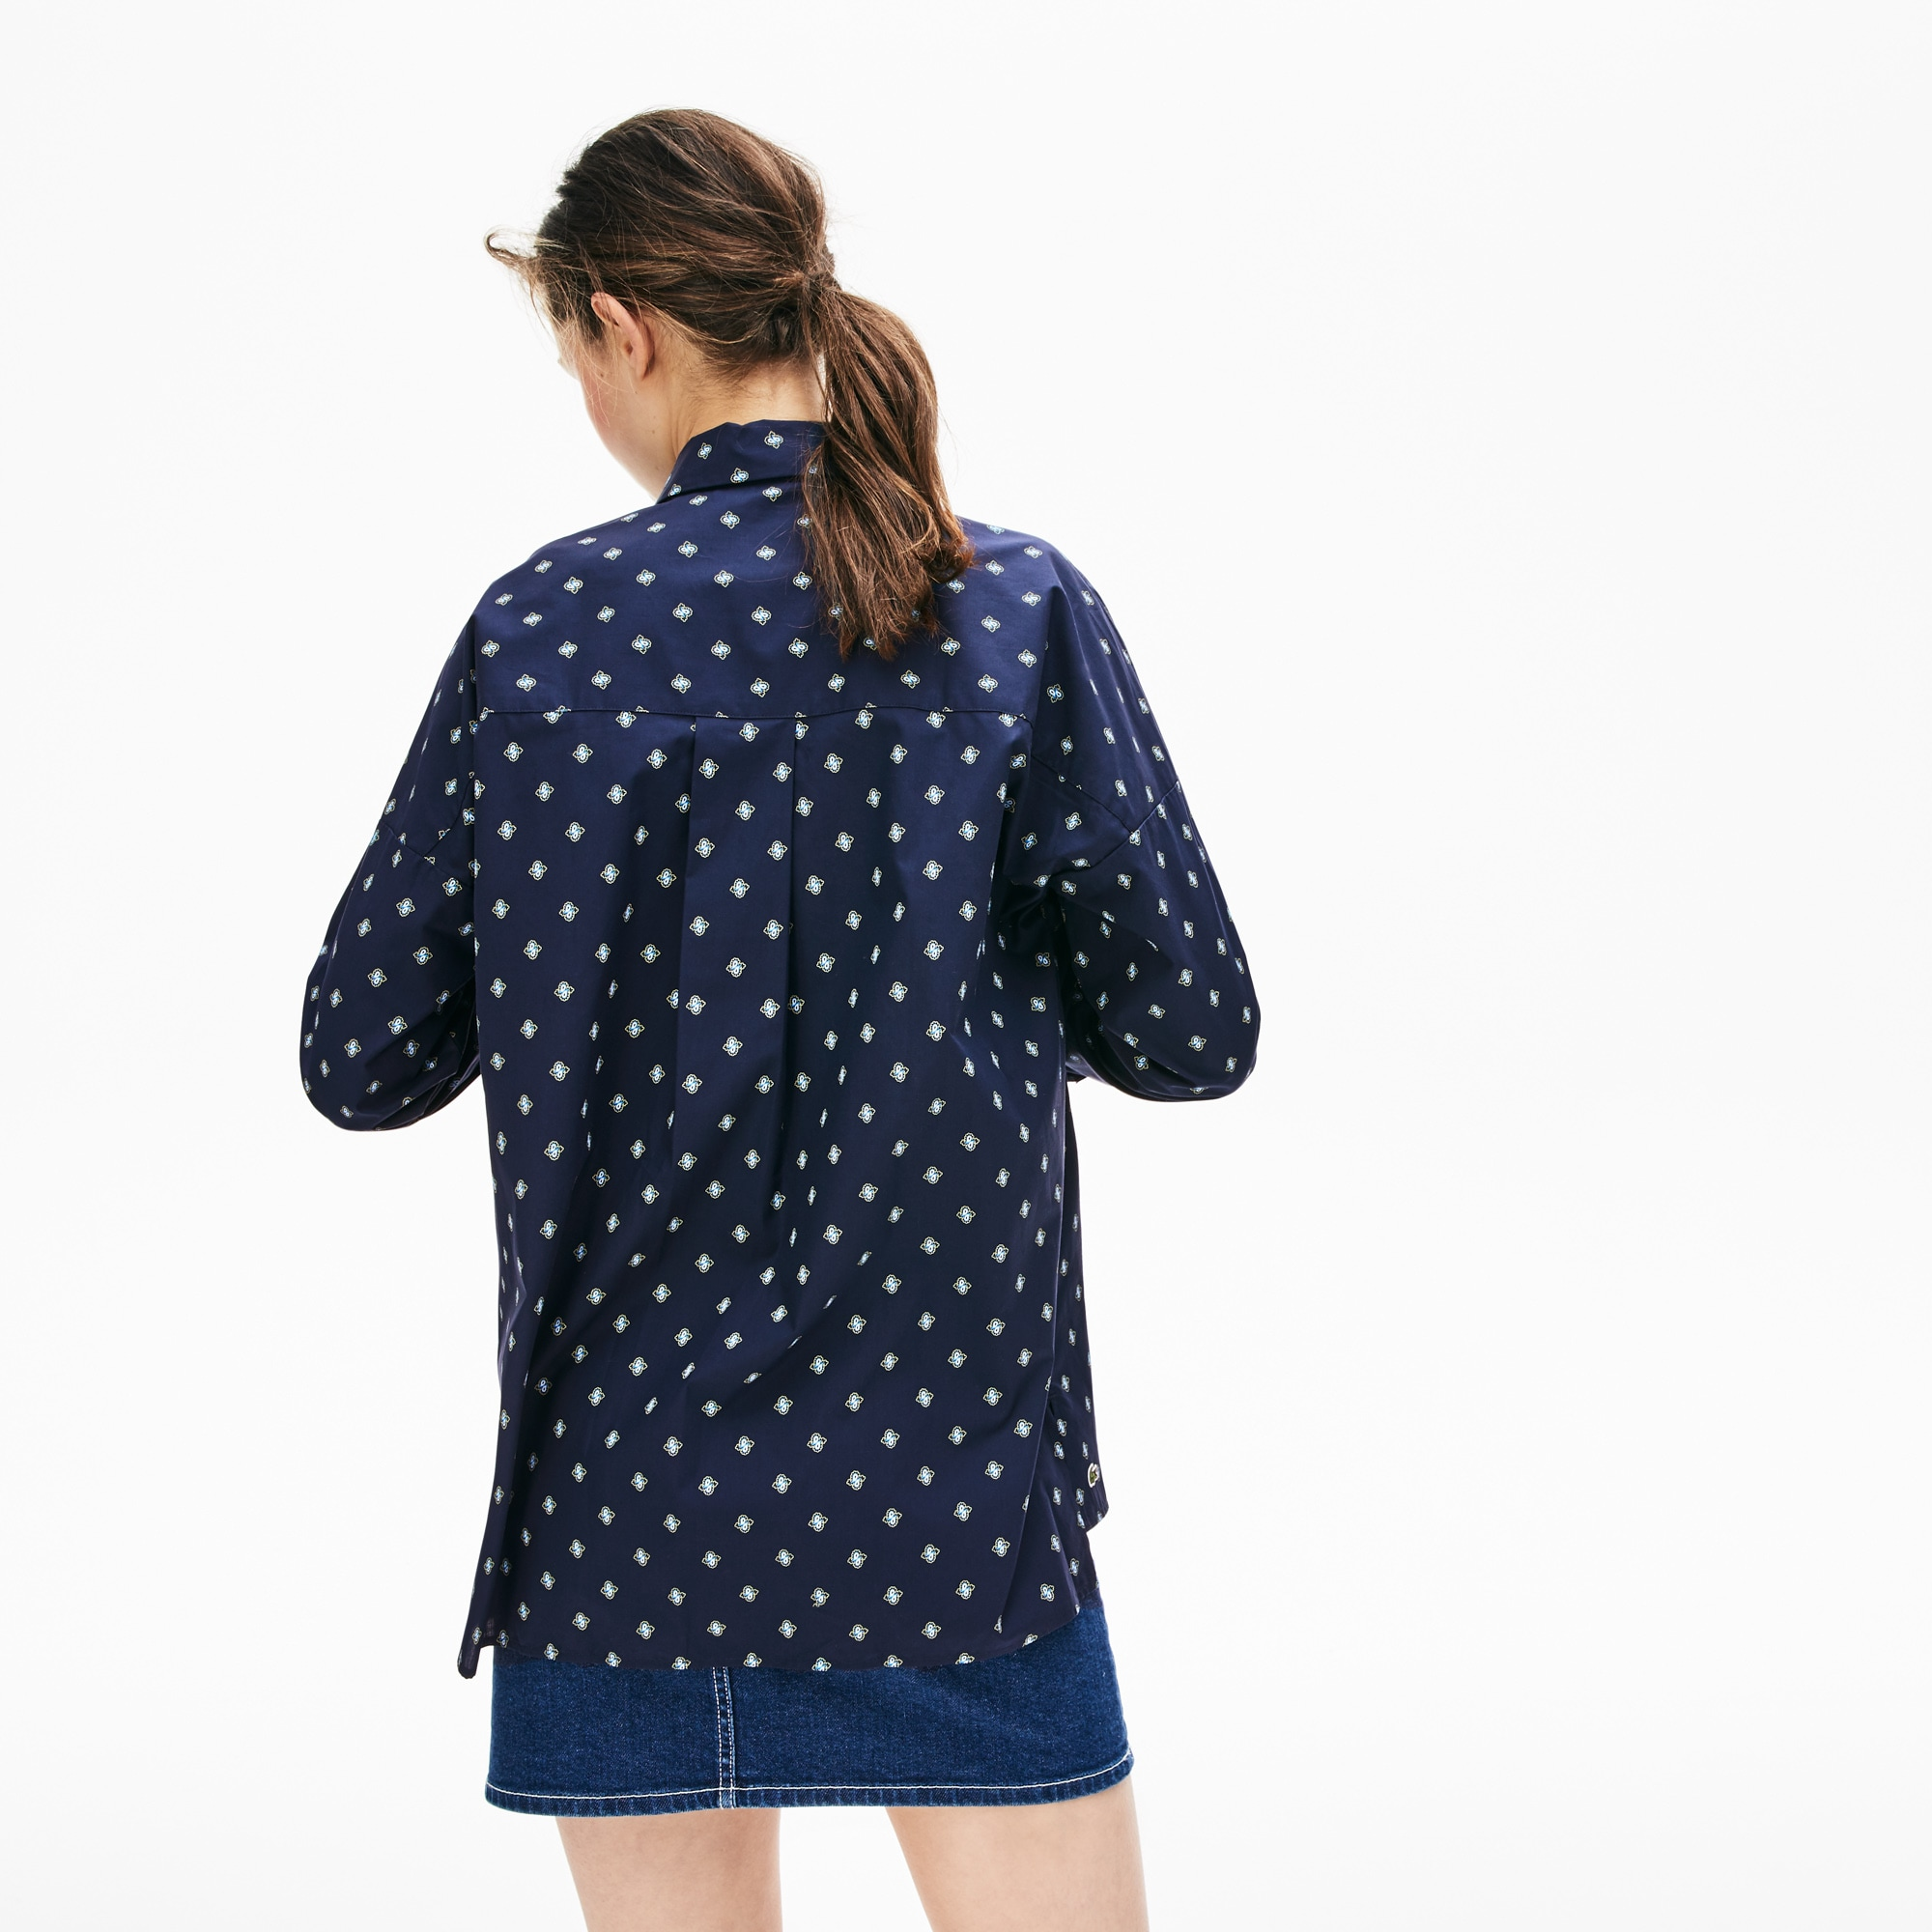 Women's Lacoste LIVE Loose Fit Knot-Sleeved Poplin Shirt